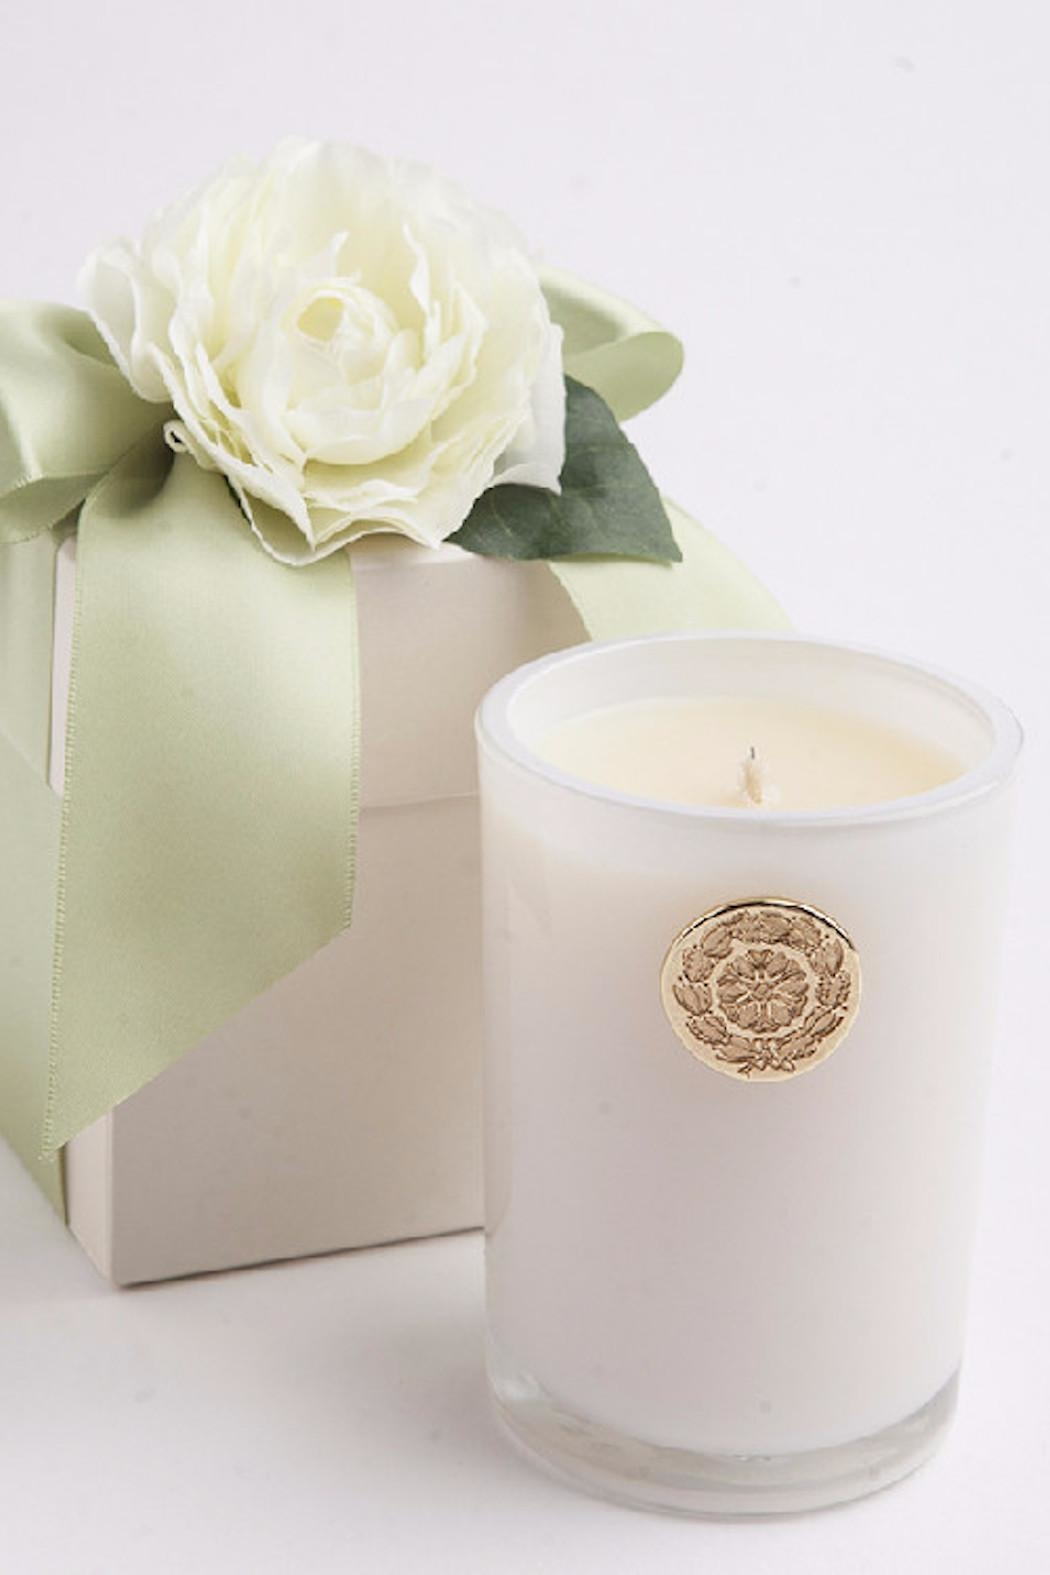 Lux fragrances jasmine candle flower box from new jersey by meli lux fragrances jasmine candle flower box front cropped image izmirmasajfo